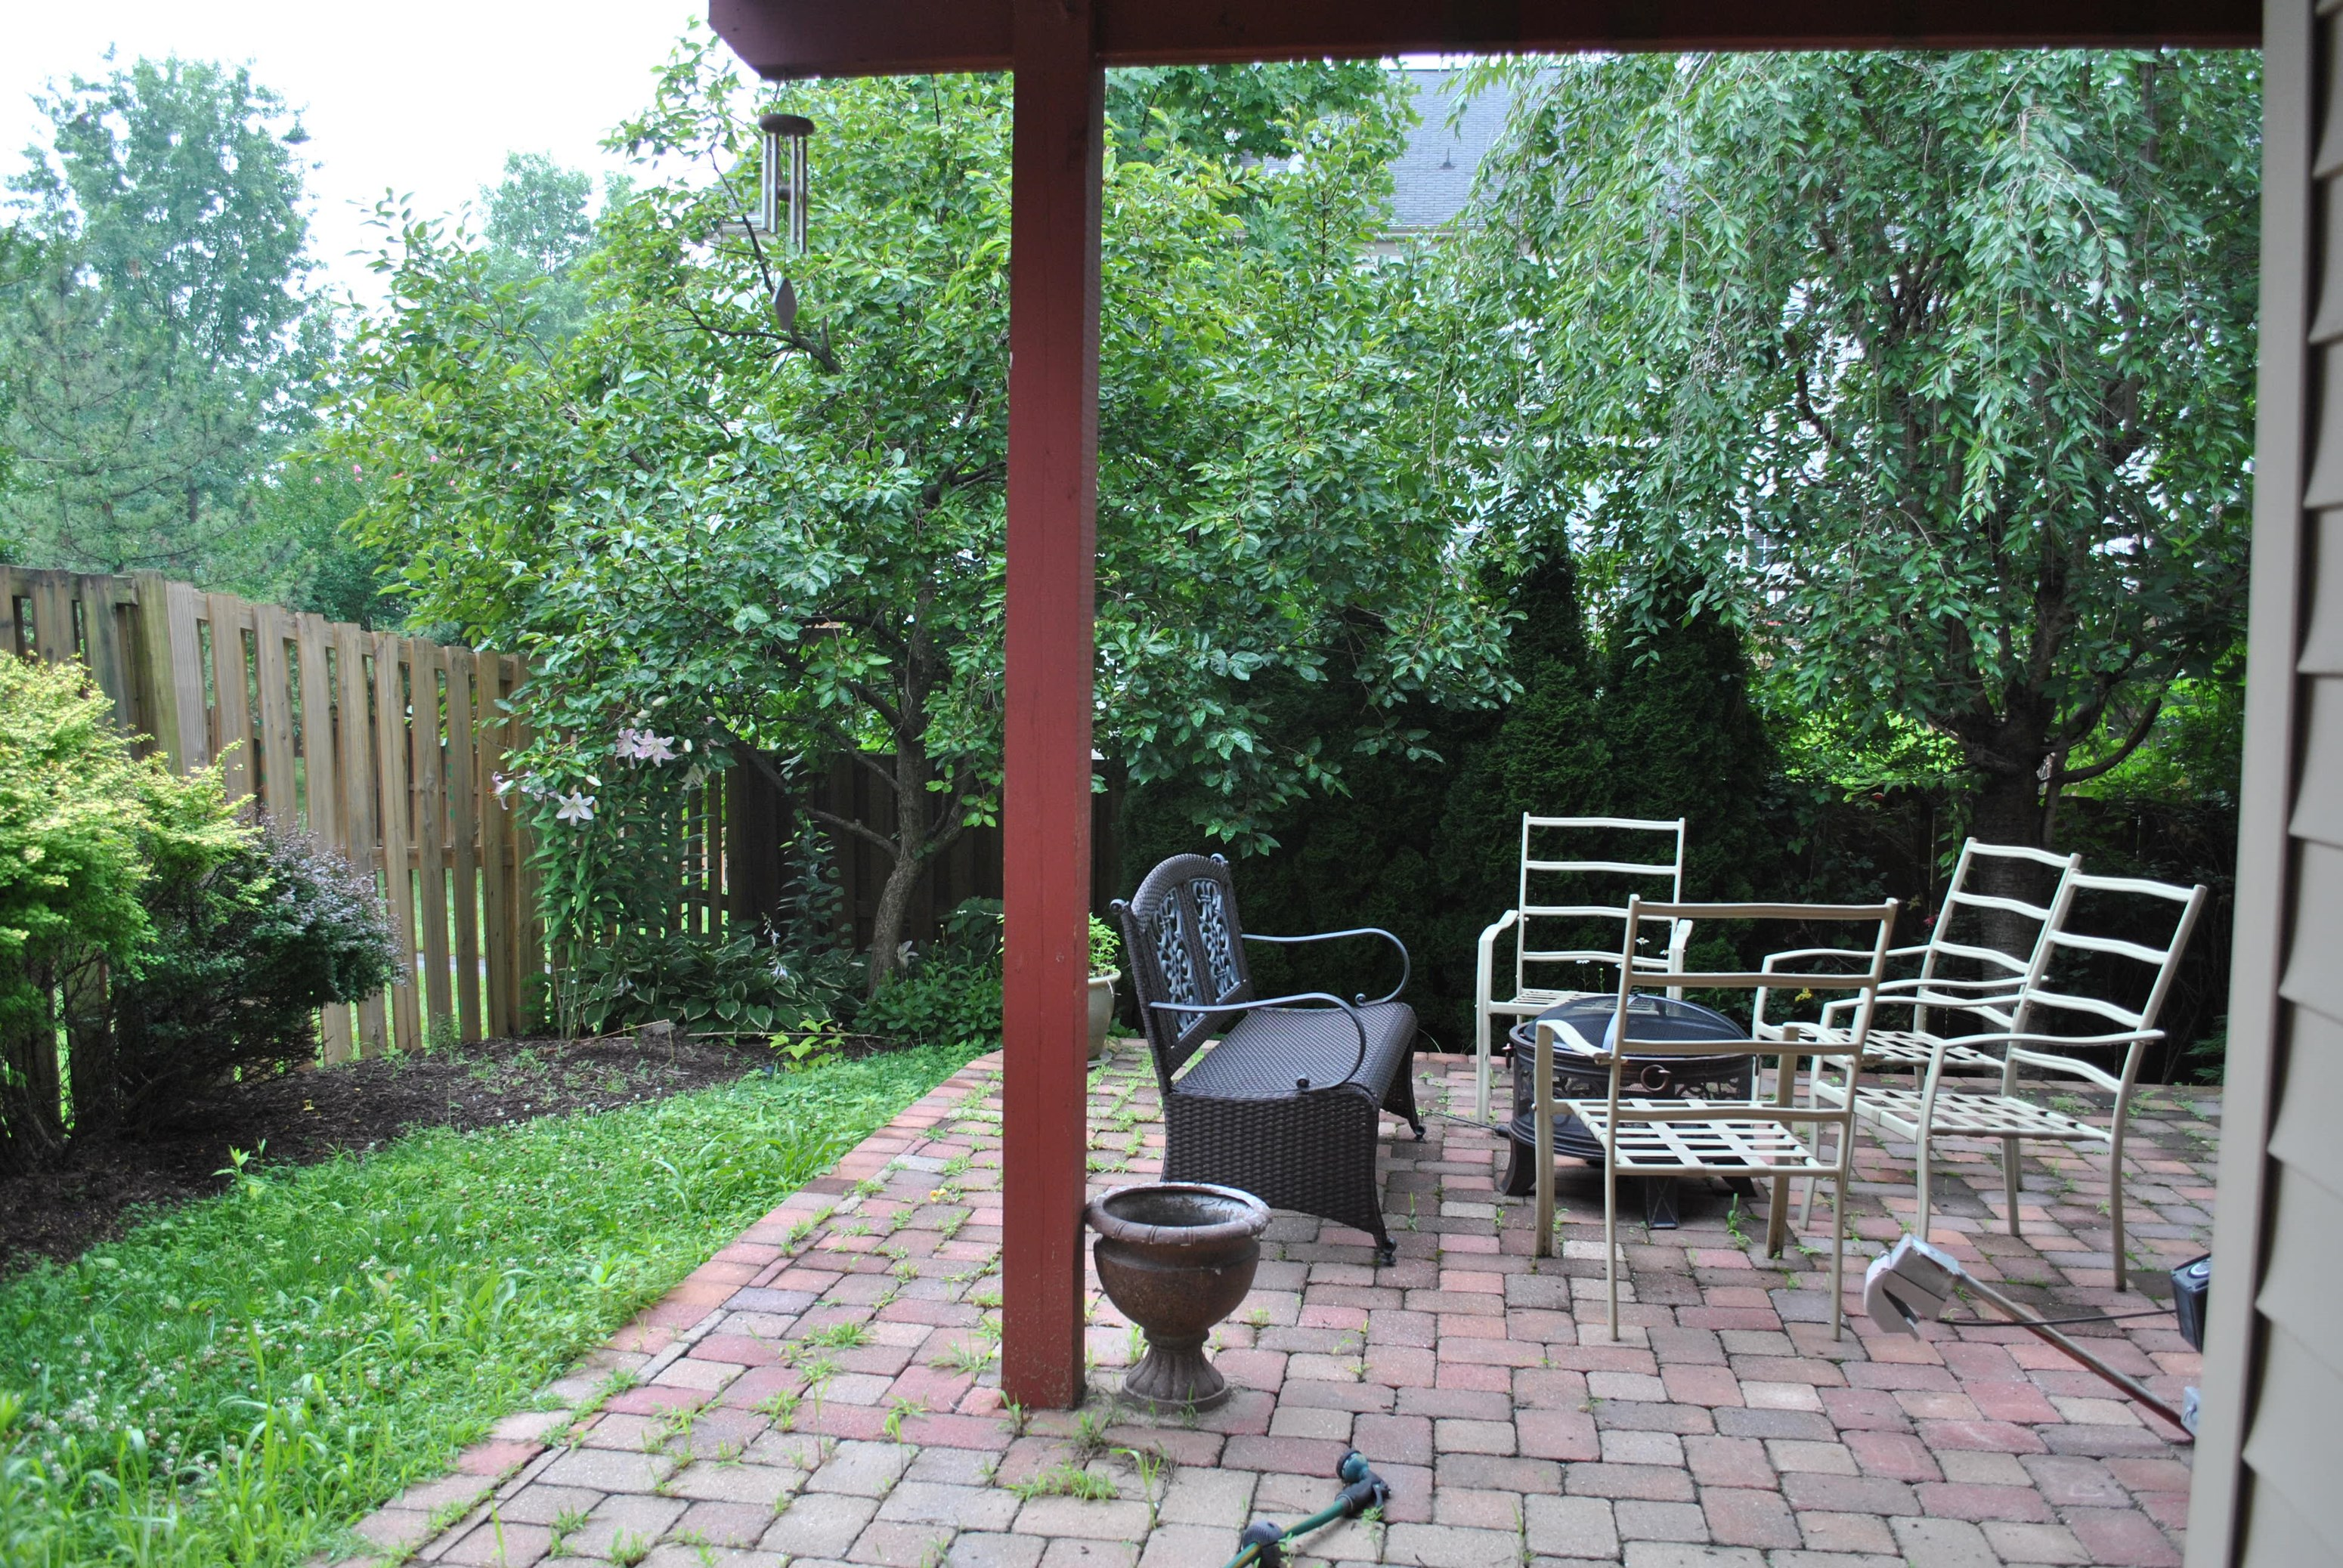 Townhouse to Rent in Fairfax, VA, Rowhouse Rentals   Sulekha